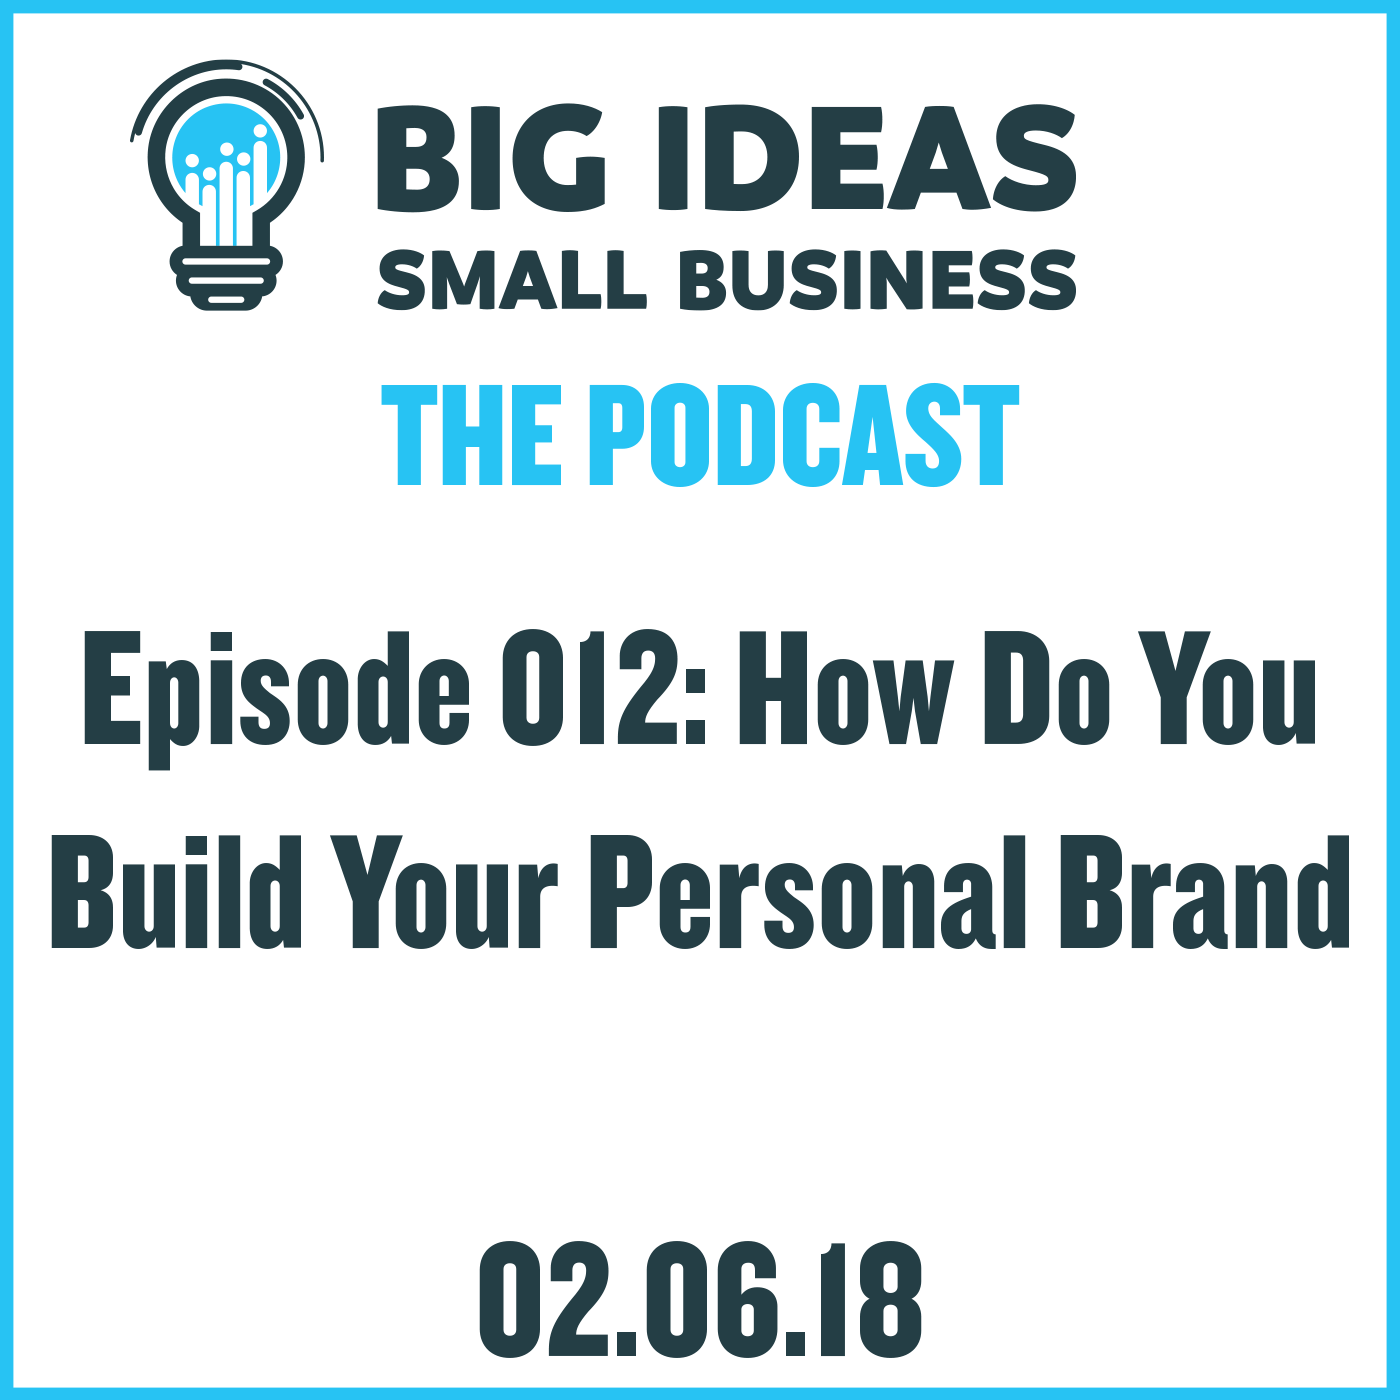 How Do You Build Your Personal Brand